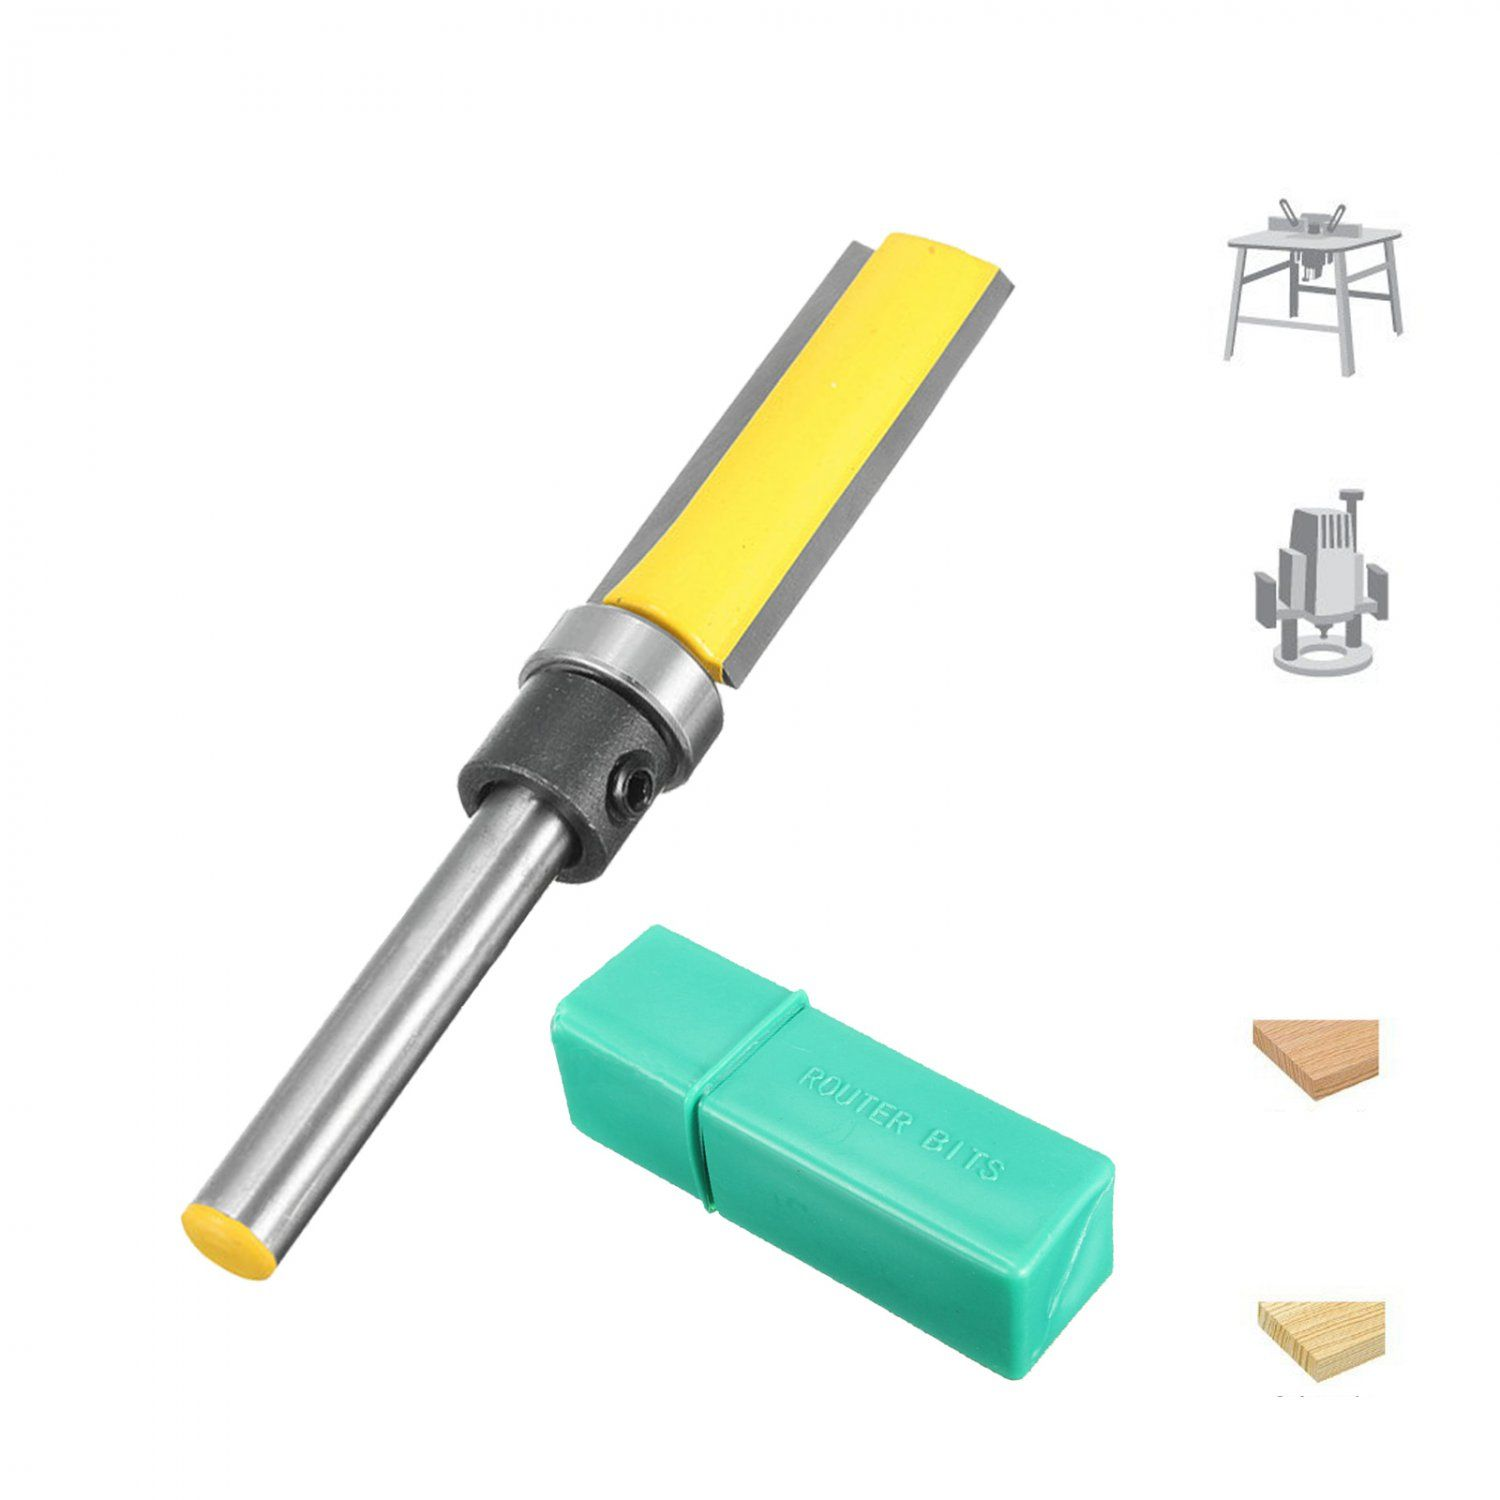 Flush Template Trim Router Bit Carbide Pattern Cnc 2 Flute Wood Cutter 1 4 C3 9 99 Router Bits Trim Router Router